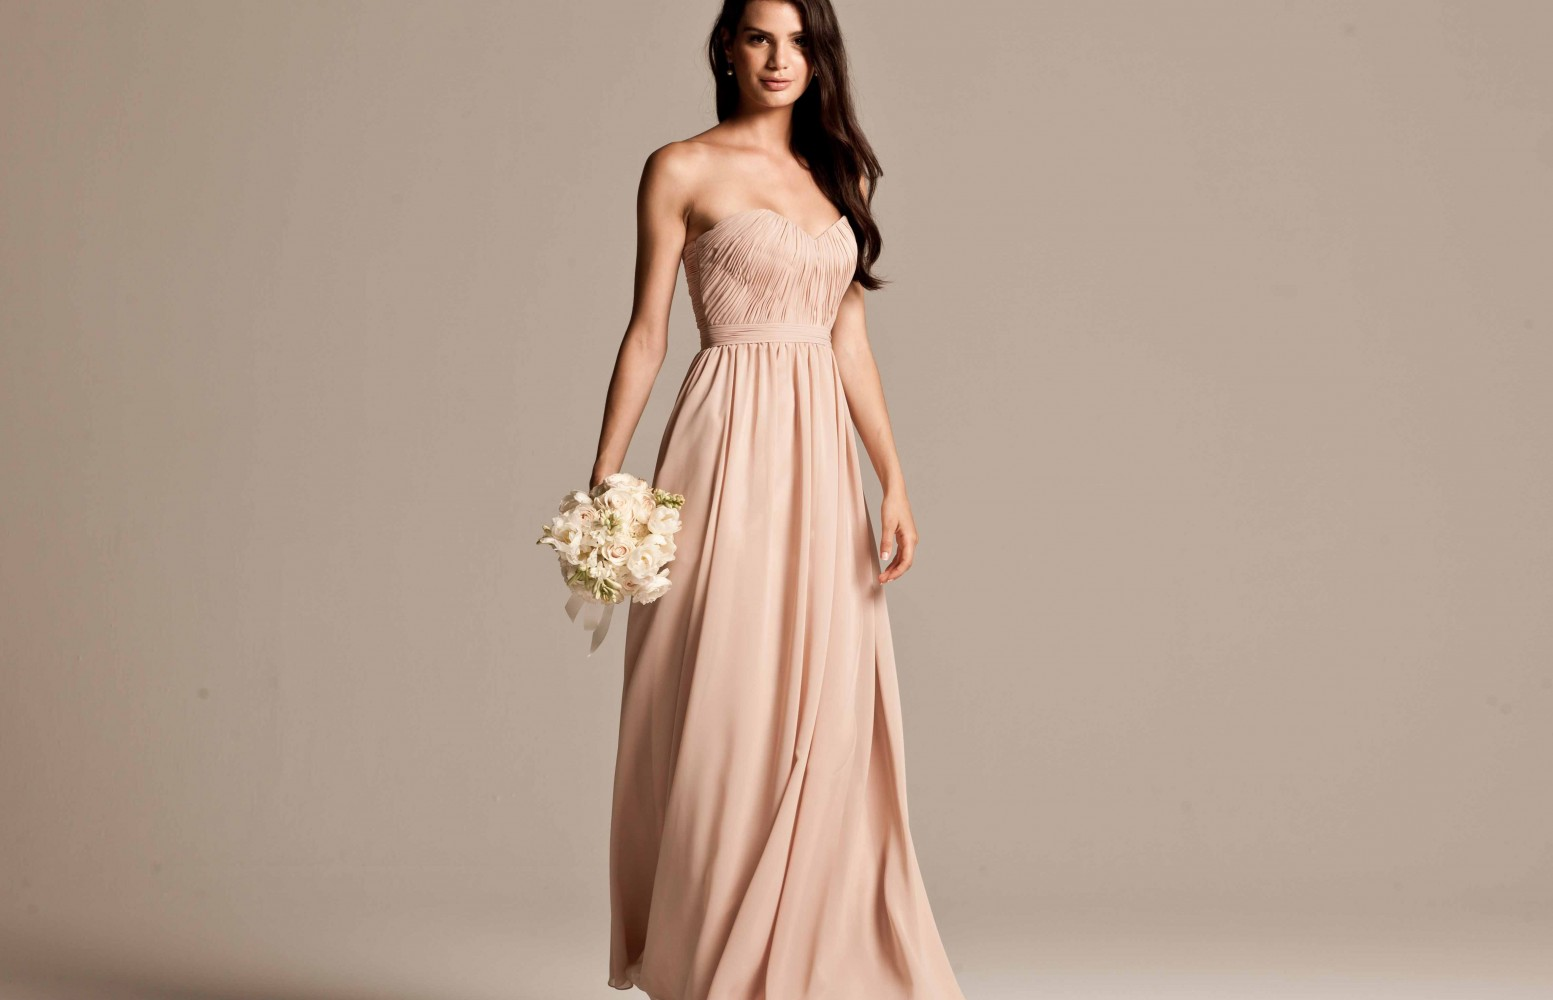 2019 year for women- Bridesmaid lace dresses australia